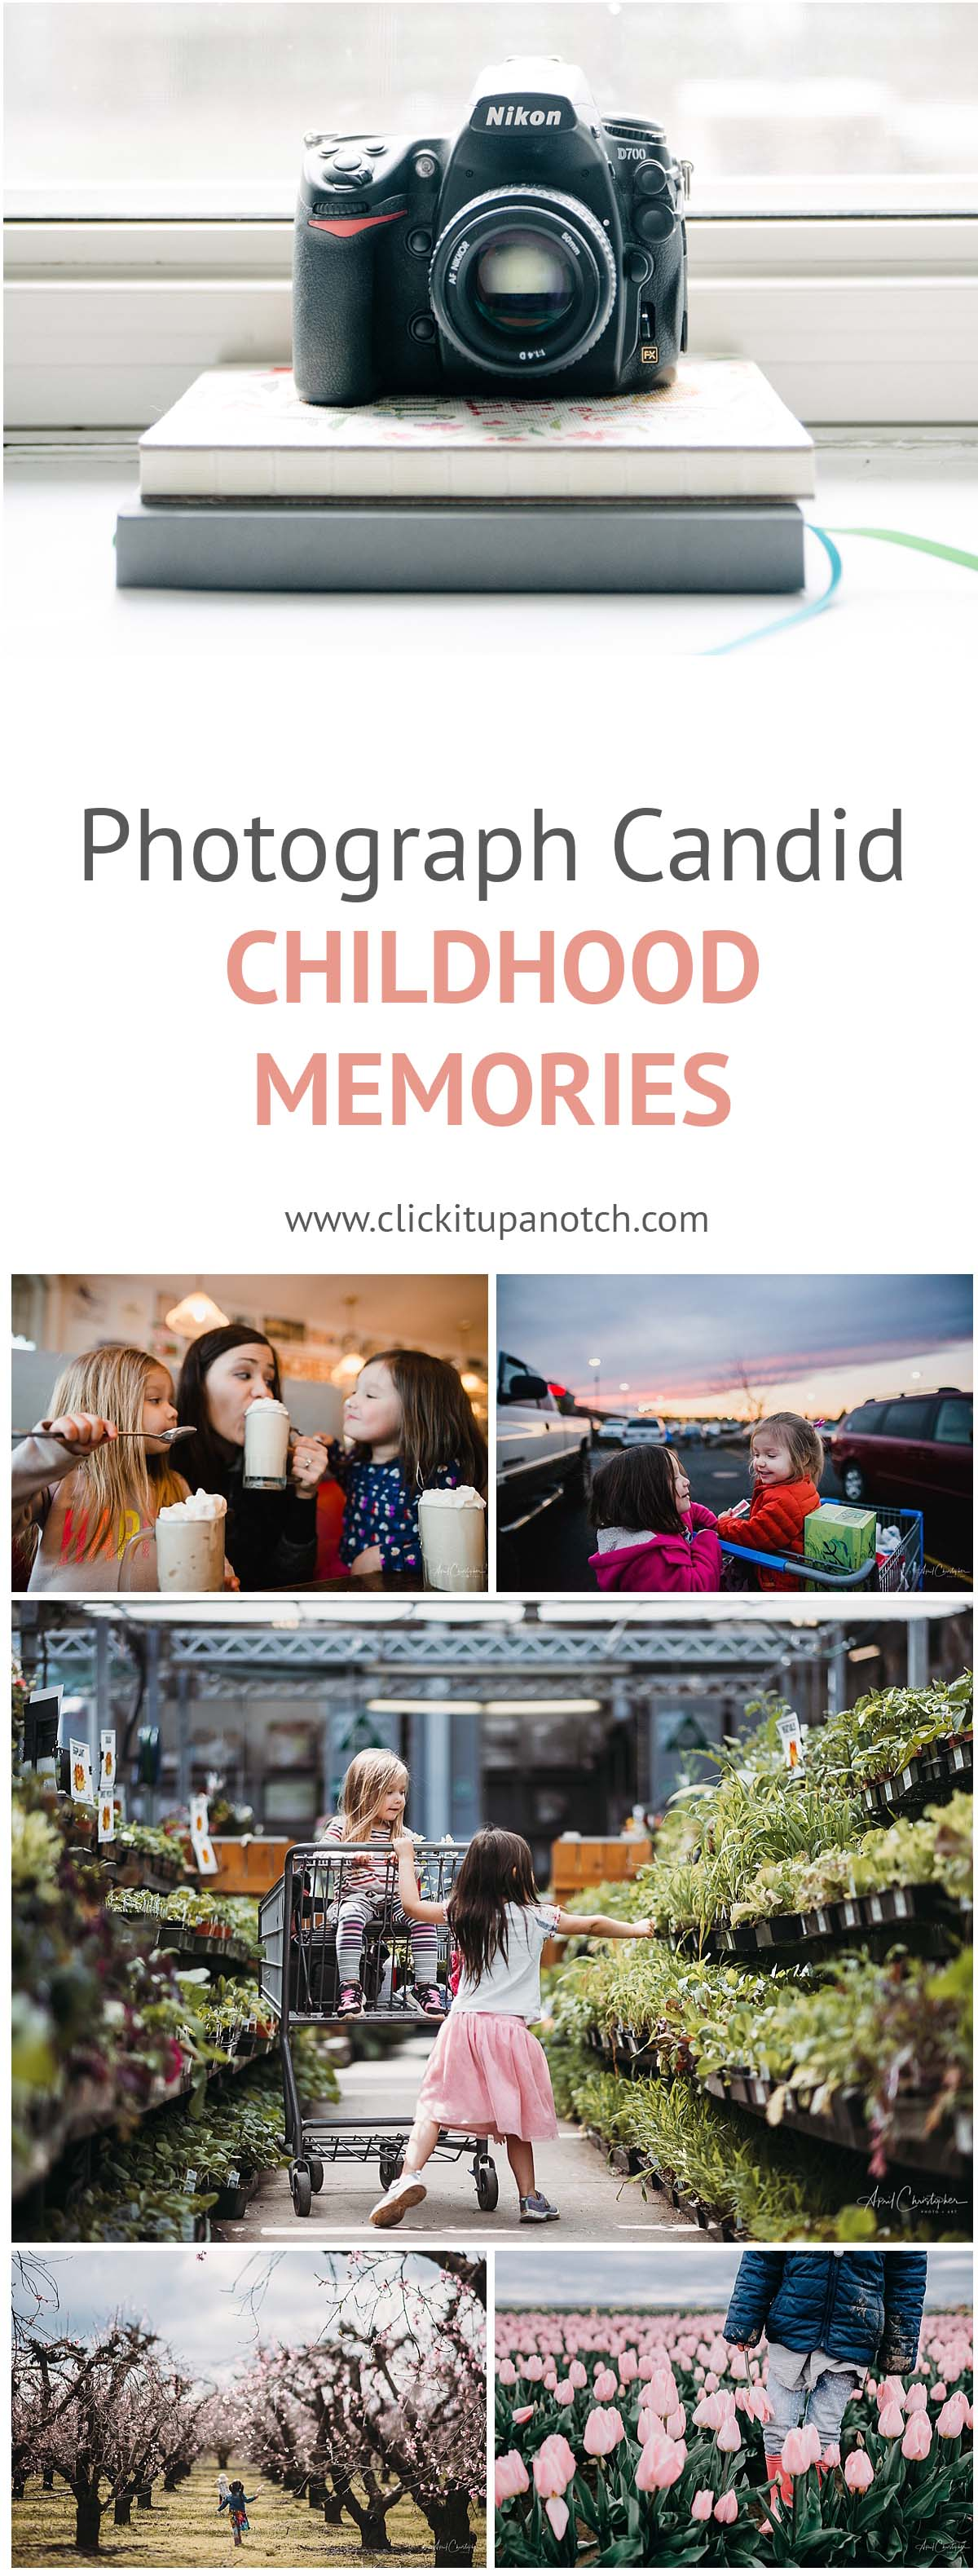 Yes! These candid childhood memories are the ones I want to photograph. I want photo albums full of their candid childhood.